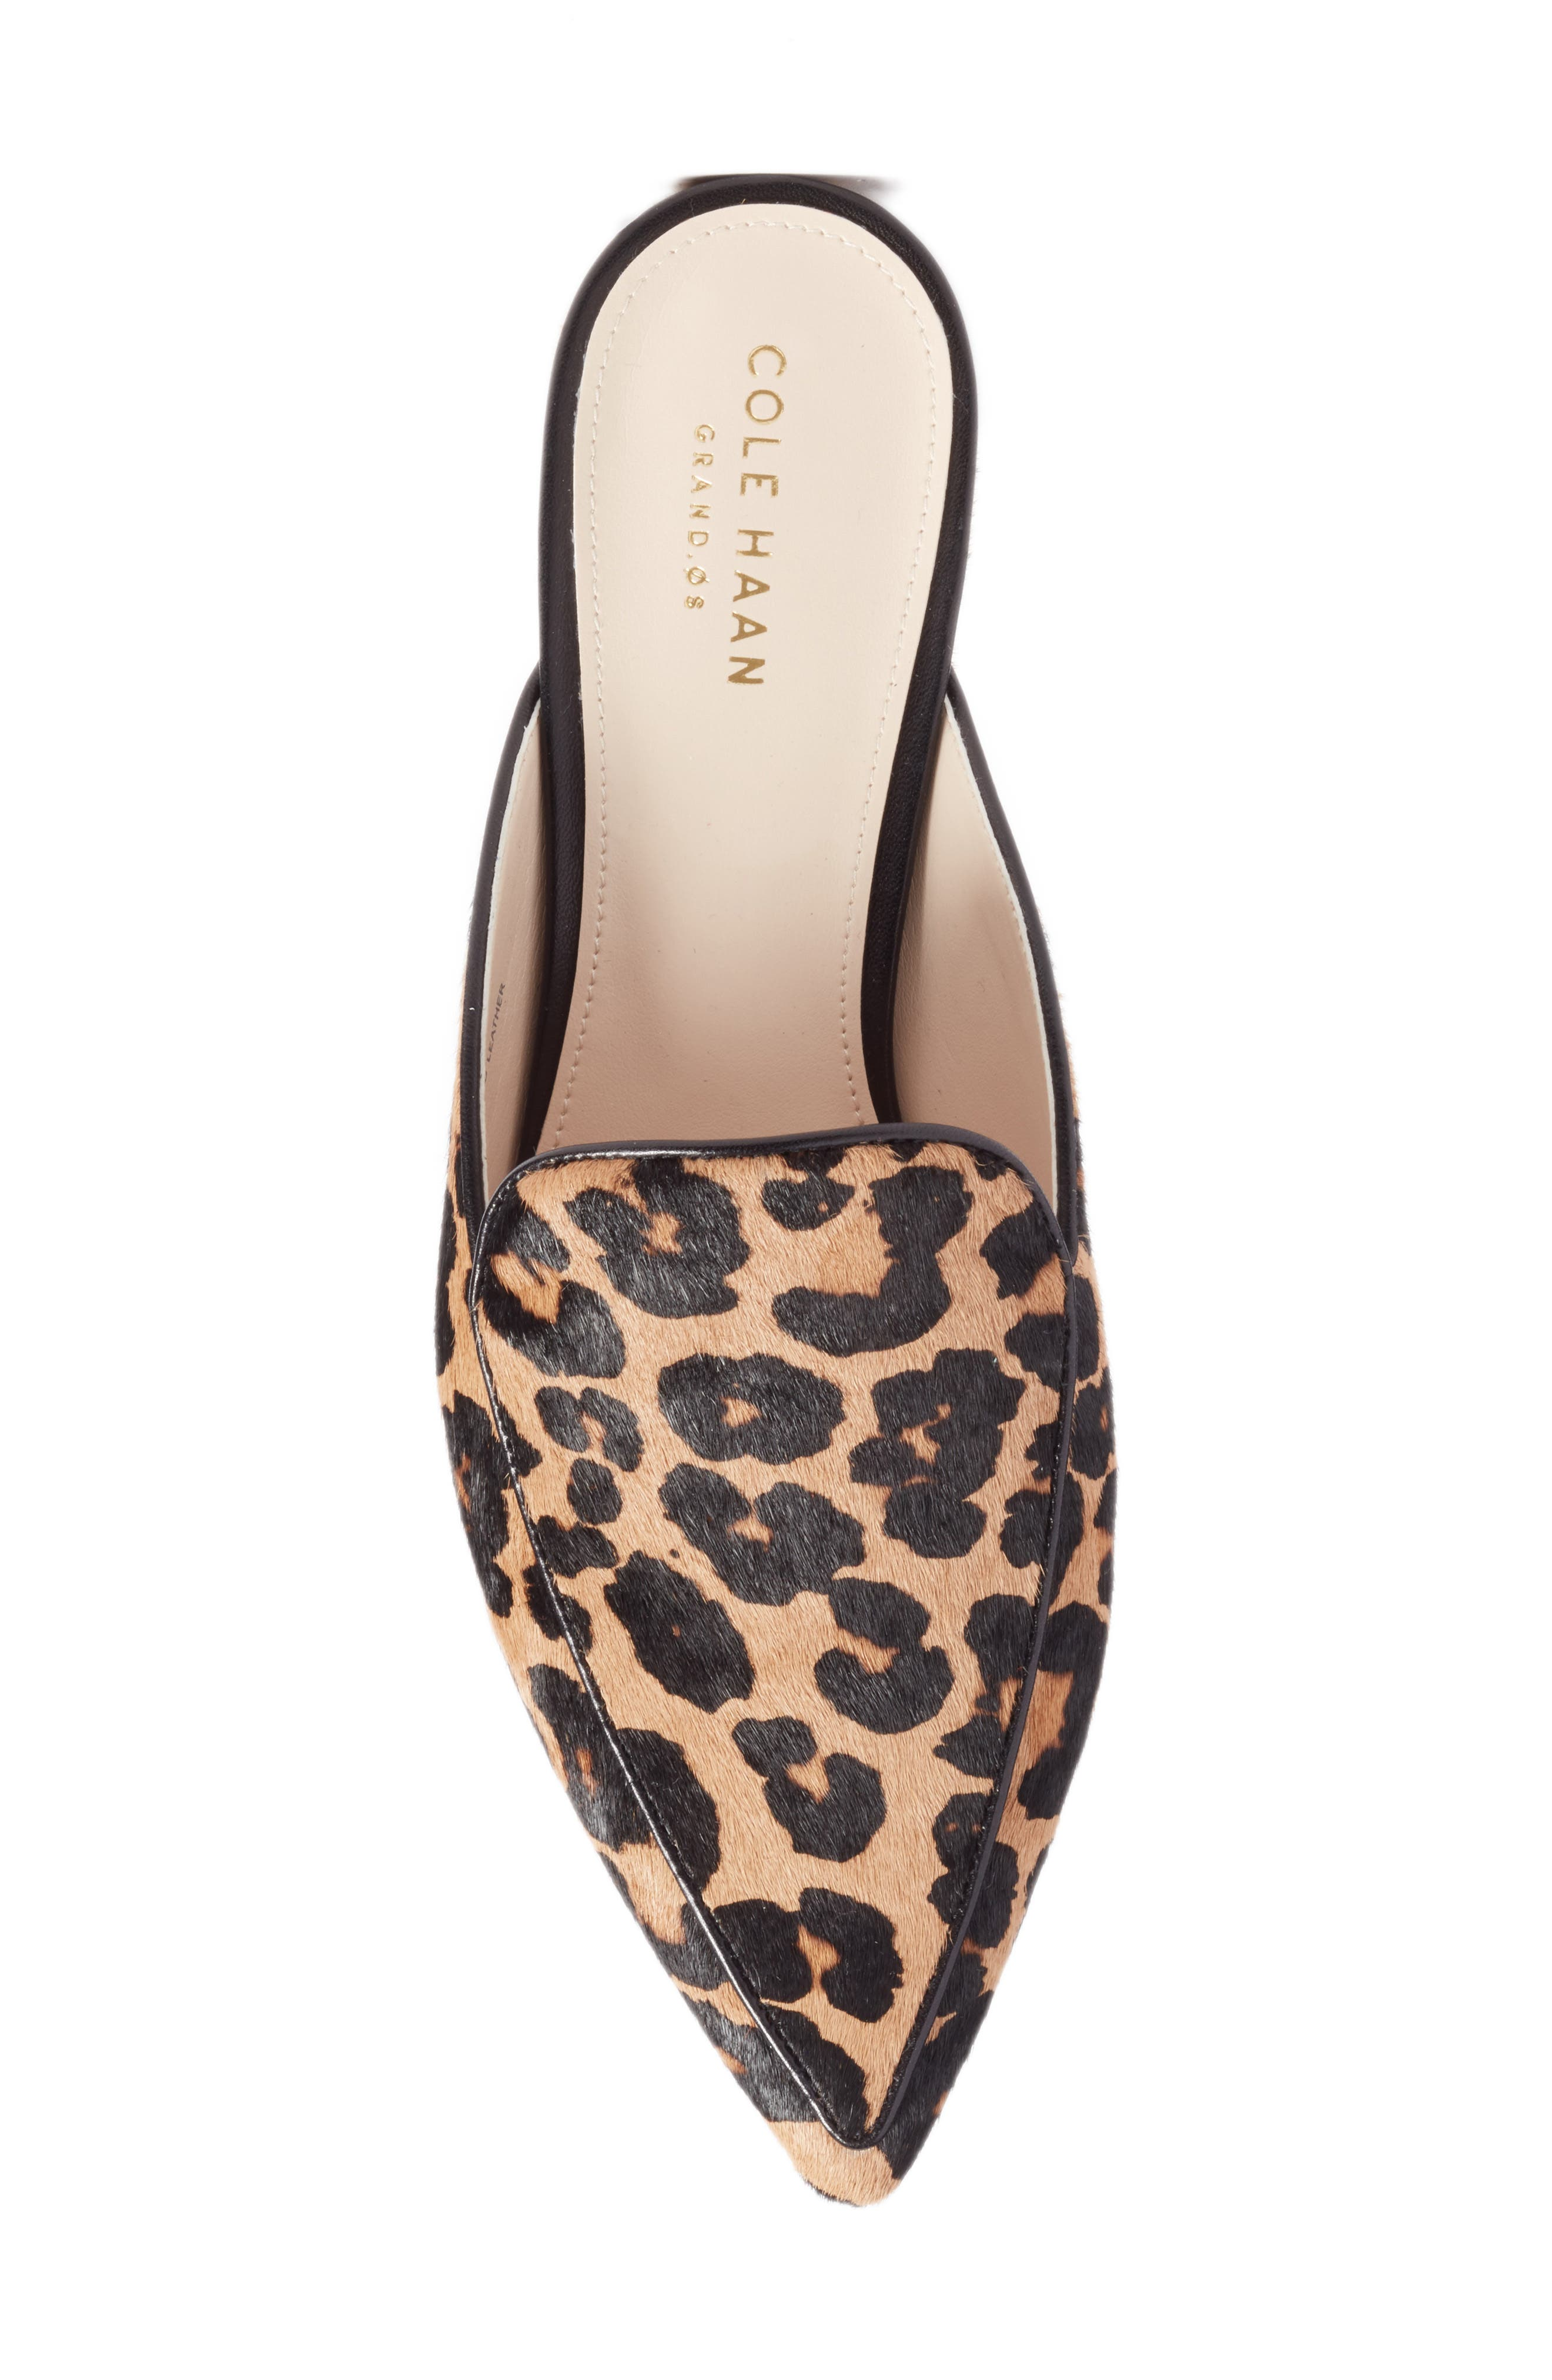 Piper Loafer Mule,                             Alternate thumbnail 5, color,                             OCELOT PRINT CALF HAIR